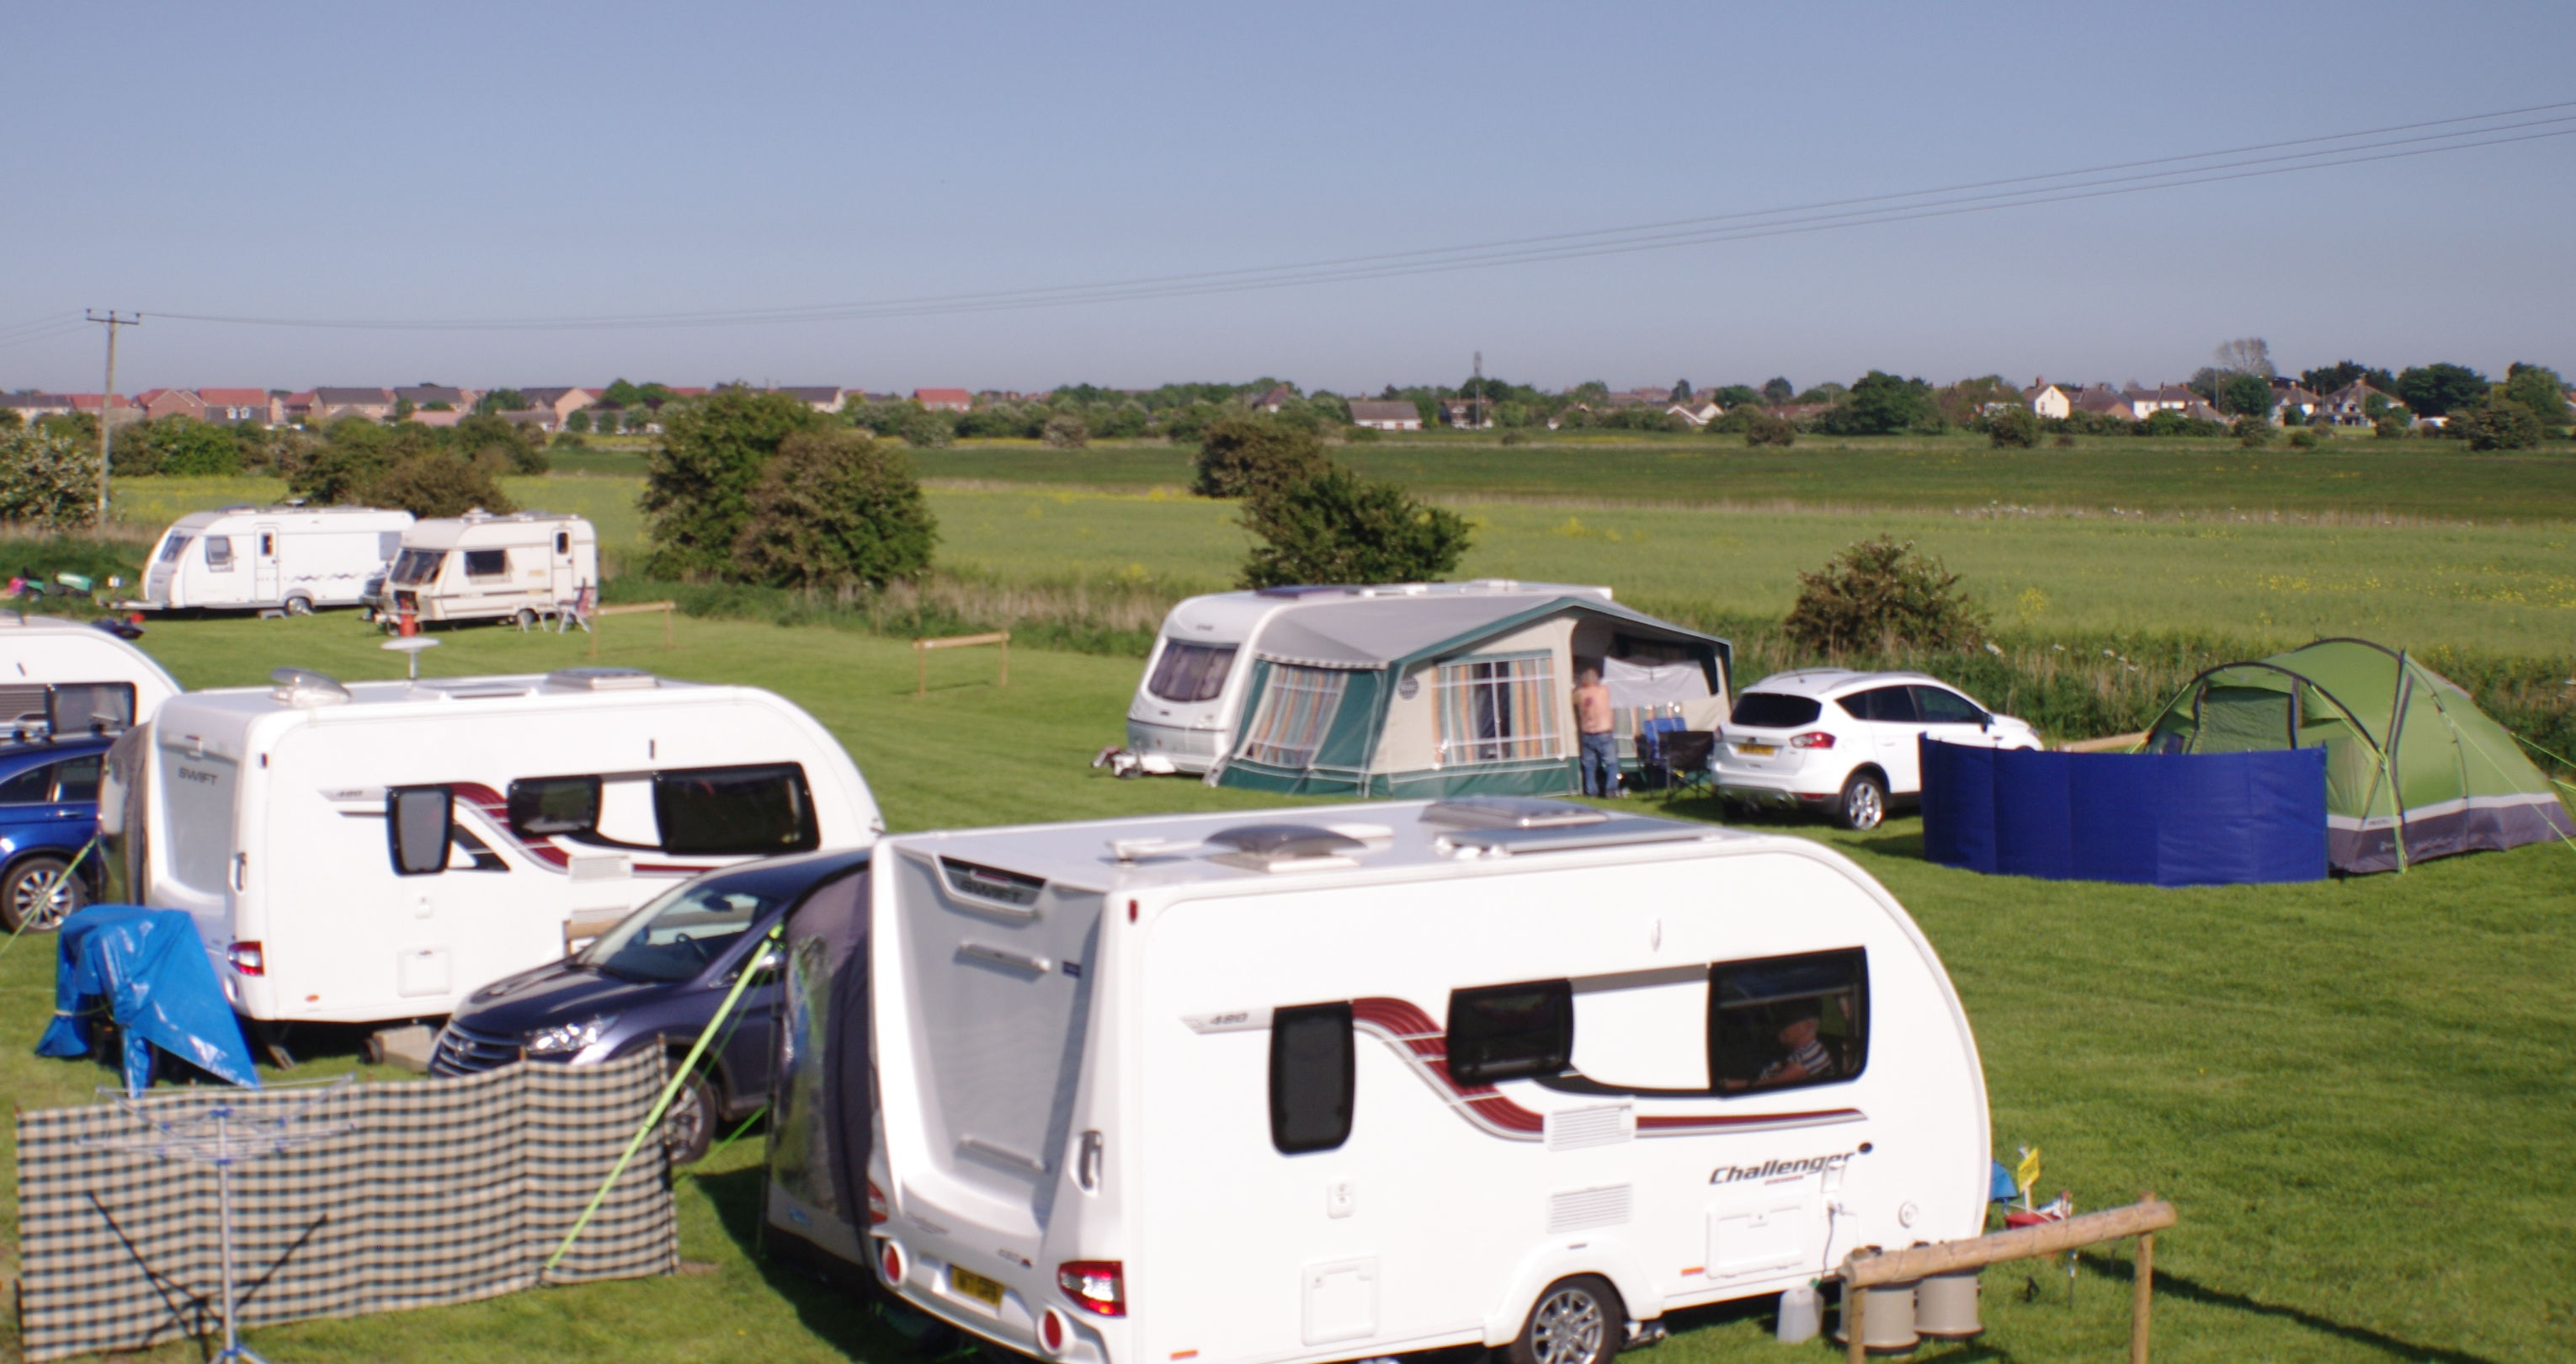 Camping and Caravanning Club rally